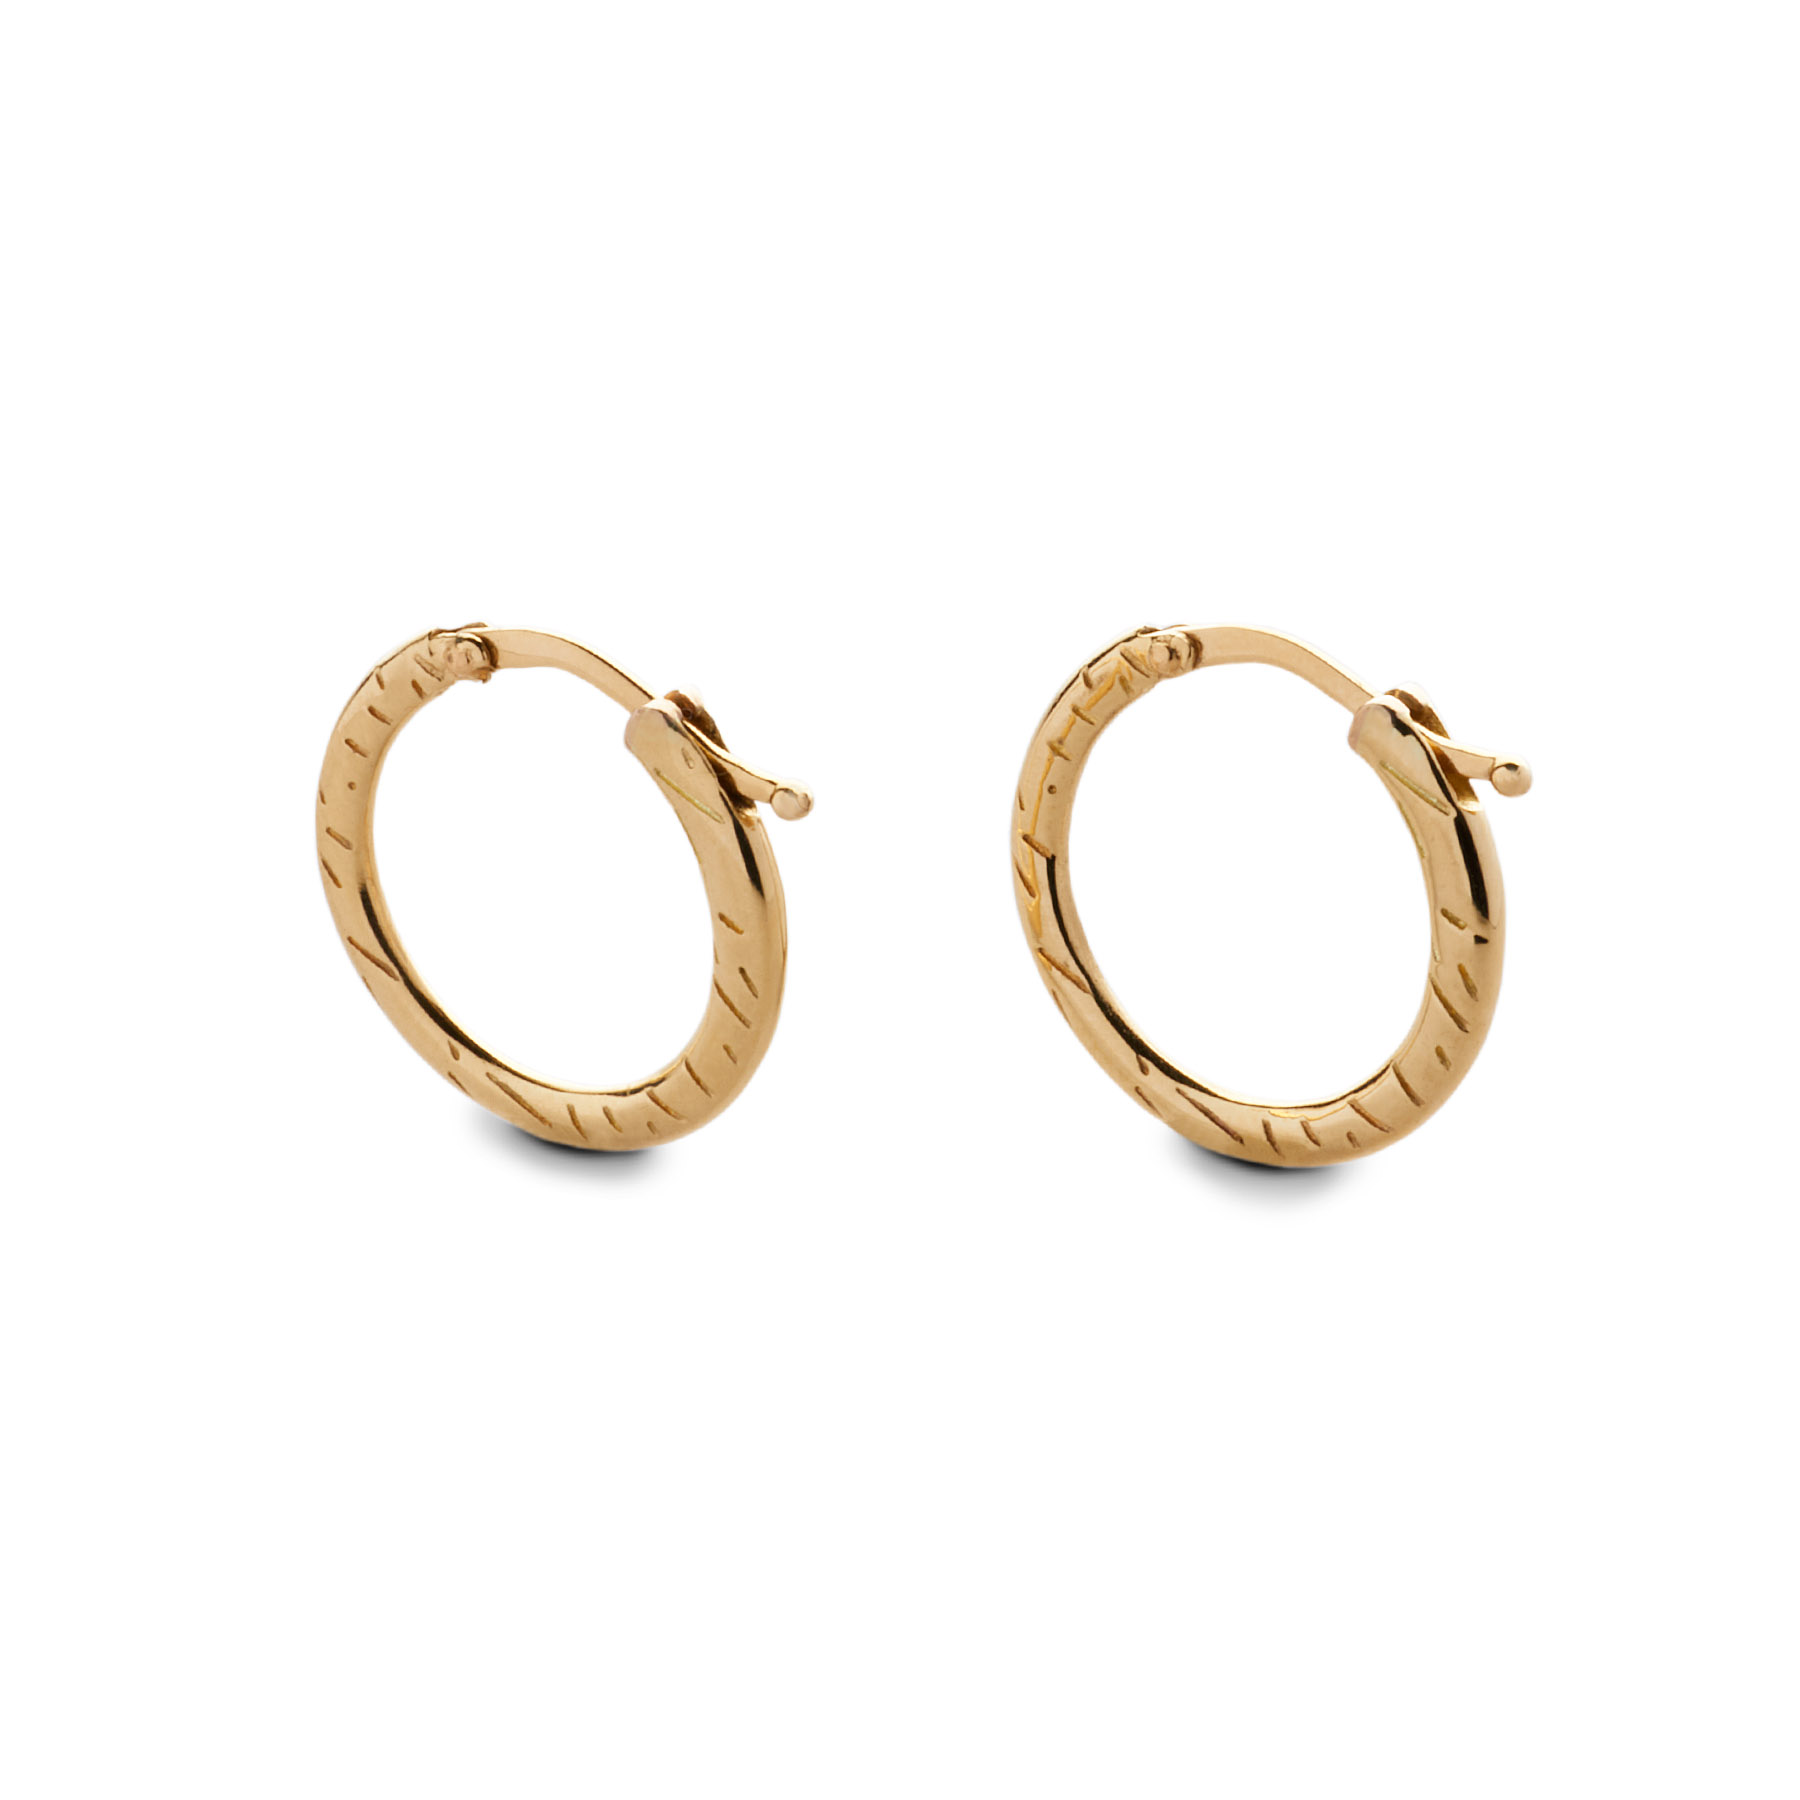 fur-hoop-earrings-FC9A-2.jpg